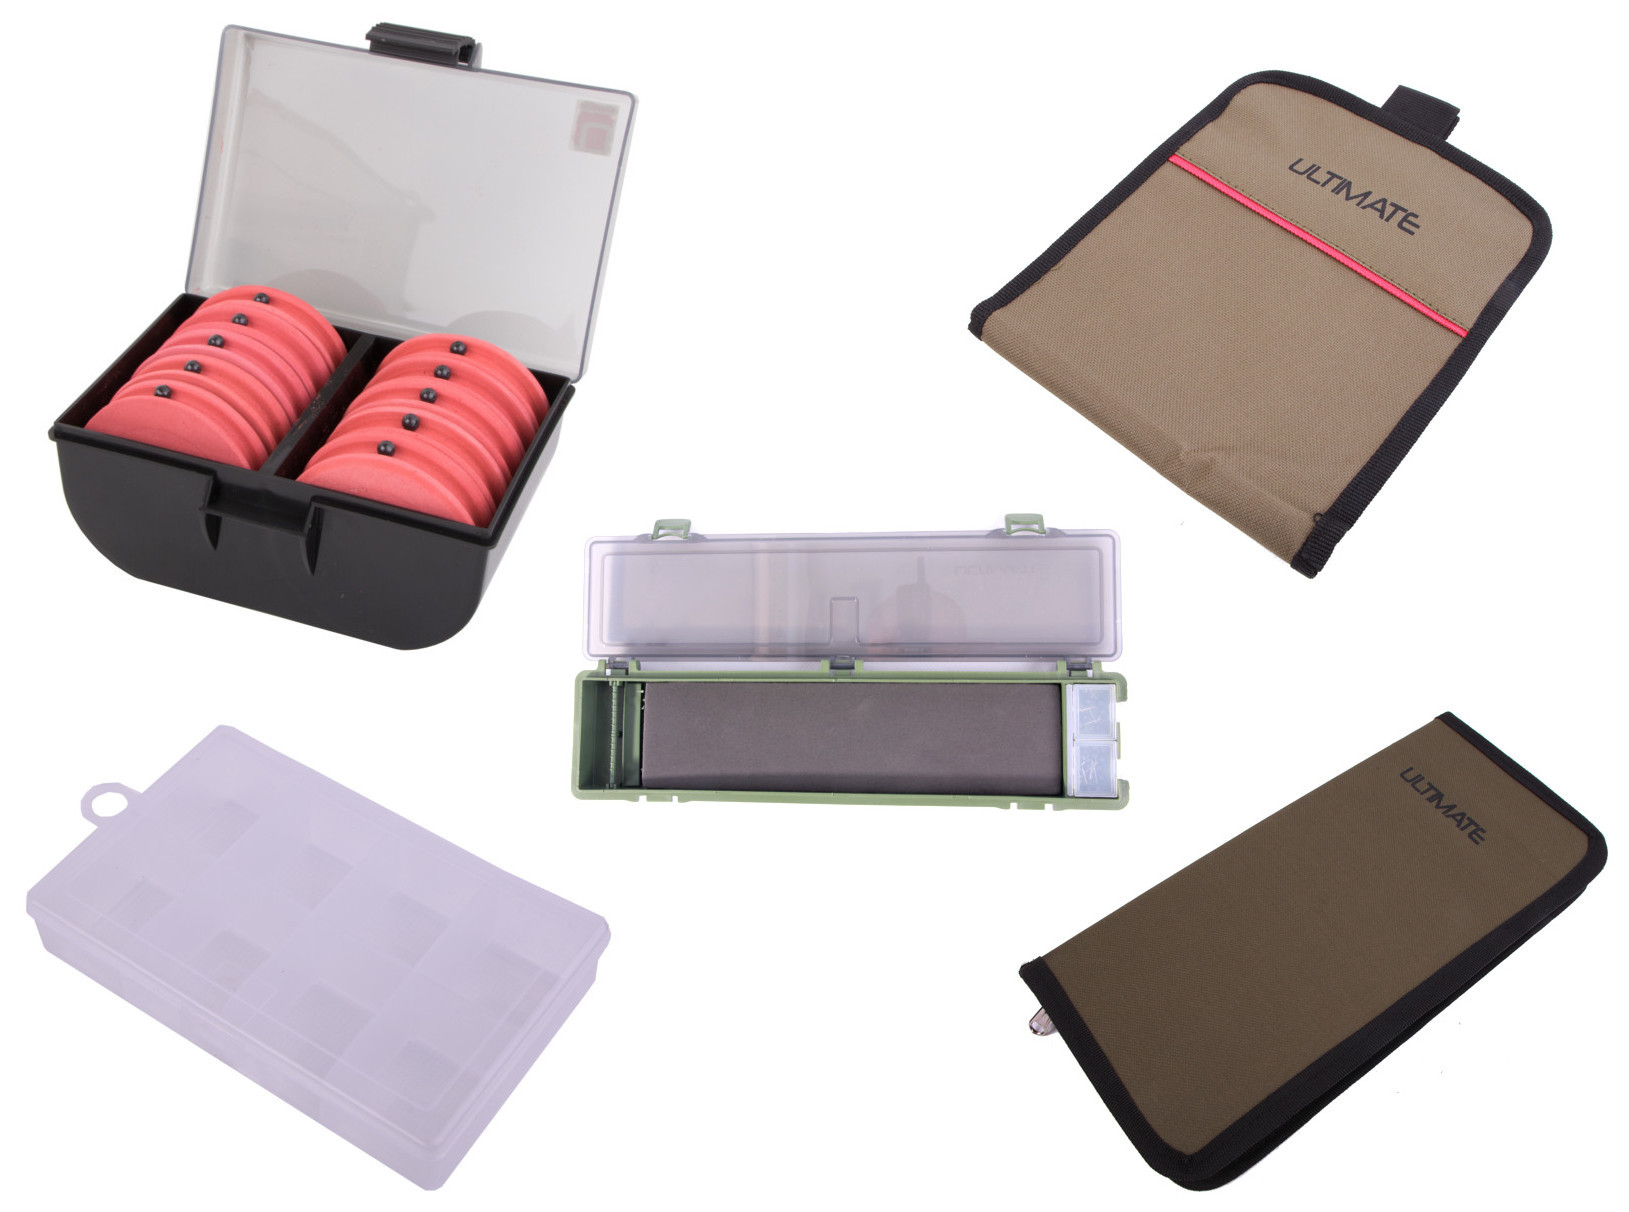 Complete storage set for all of your rigs, small tackle items and end tackle